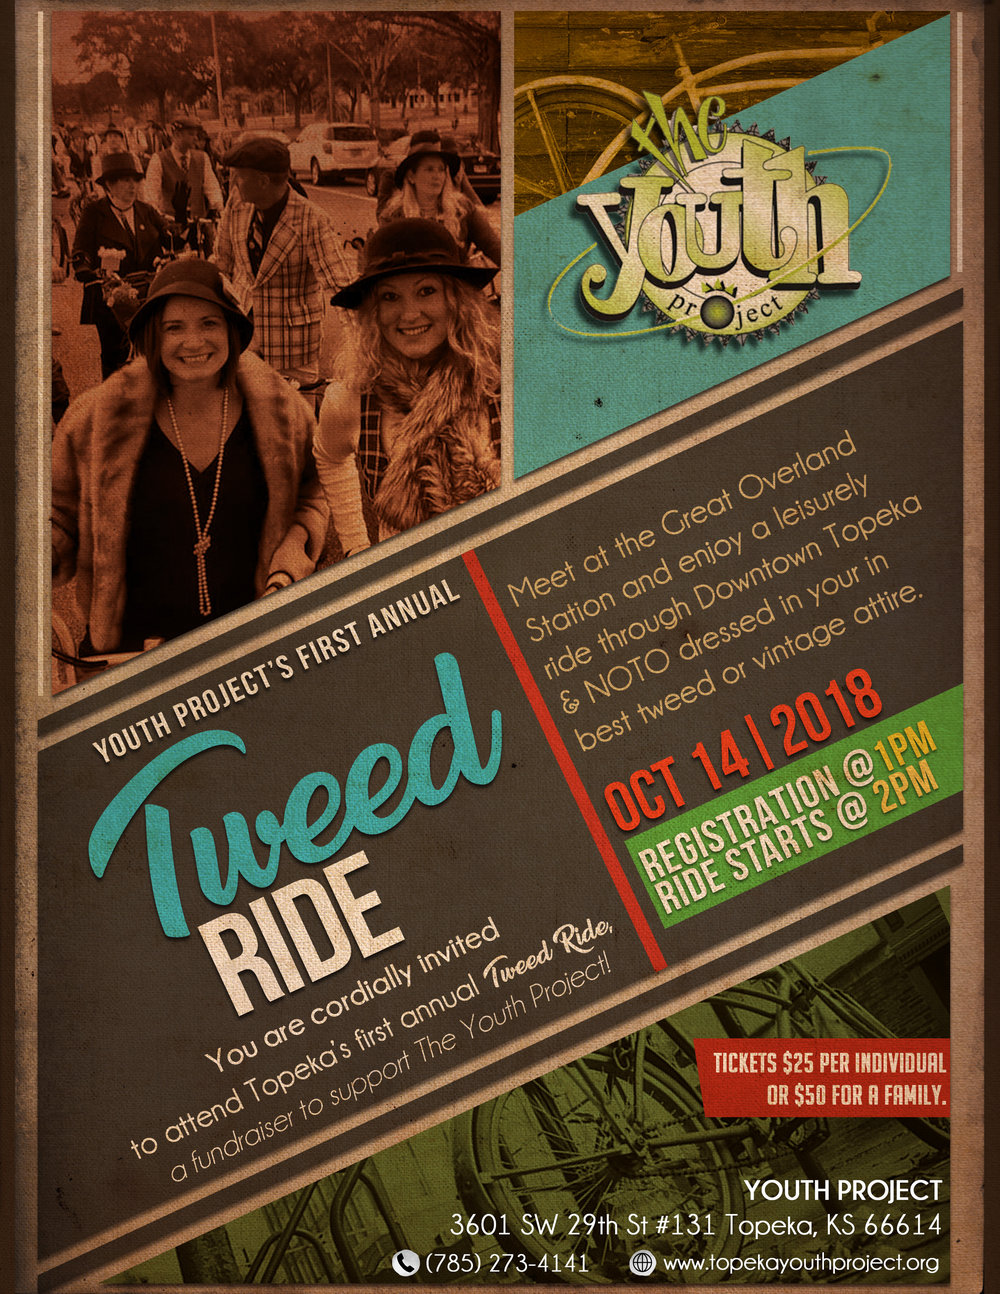 Tweed Ride Flyer.jpg